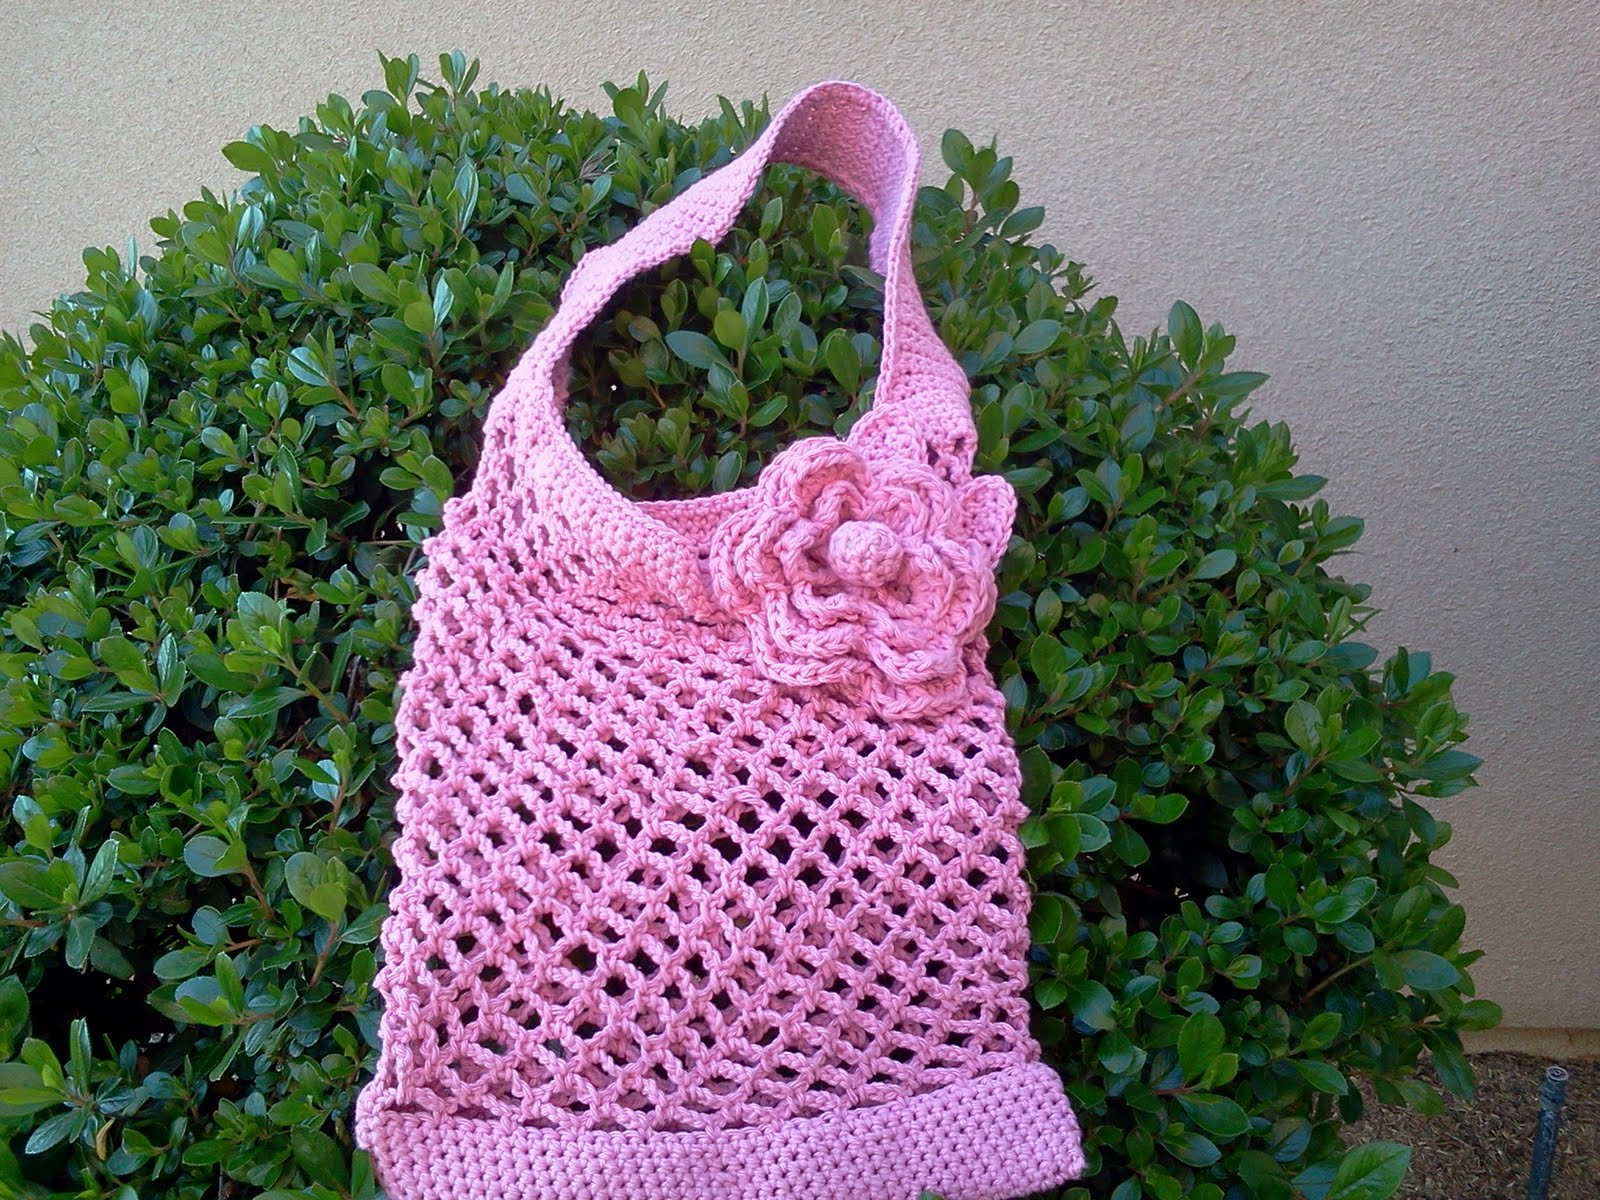 Crochet Pattern Central Bags : CROCHET MESH BAG PATTERN - Crochet Club